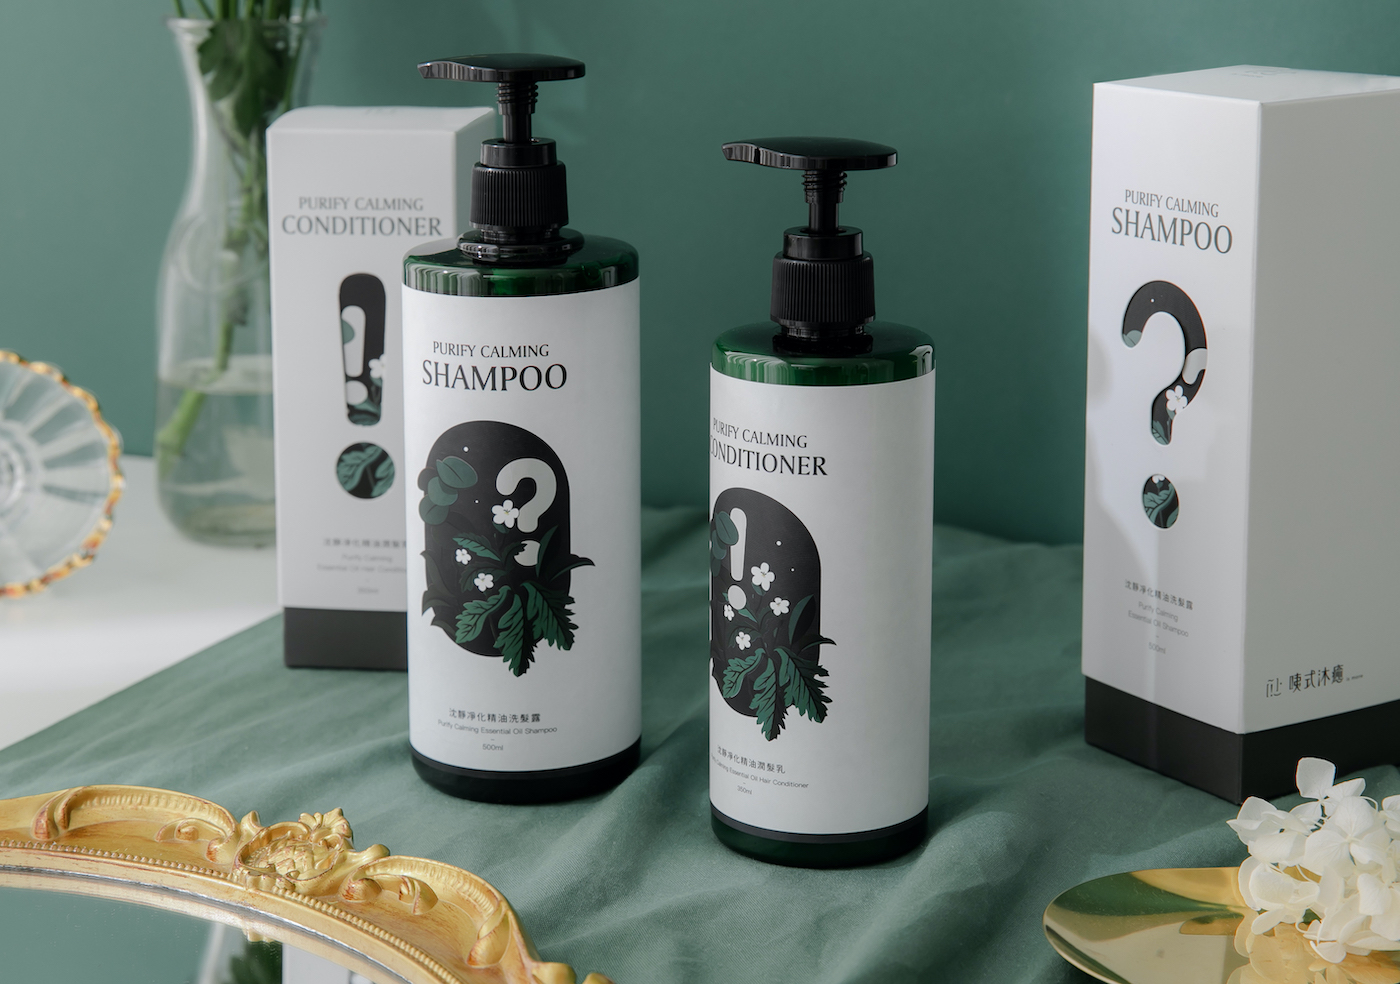 Branding and Packaging Design for Purify Calming Shampoo and Conditioner Created K9 Design